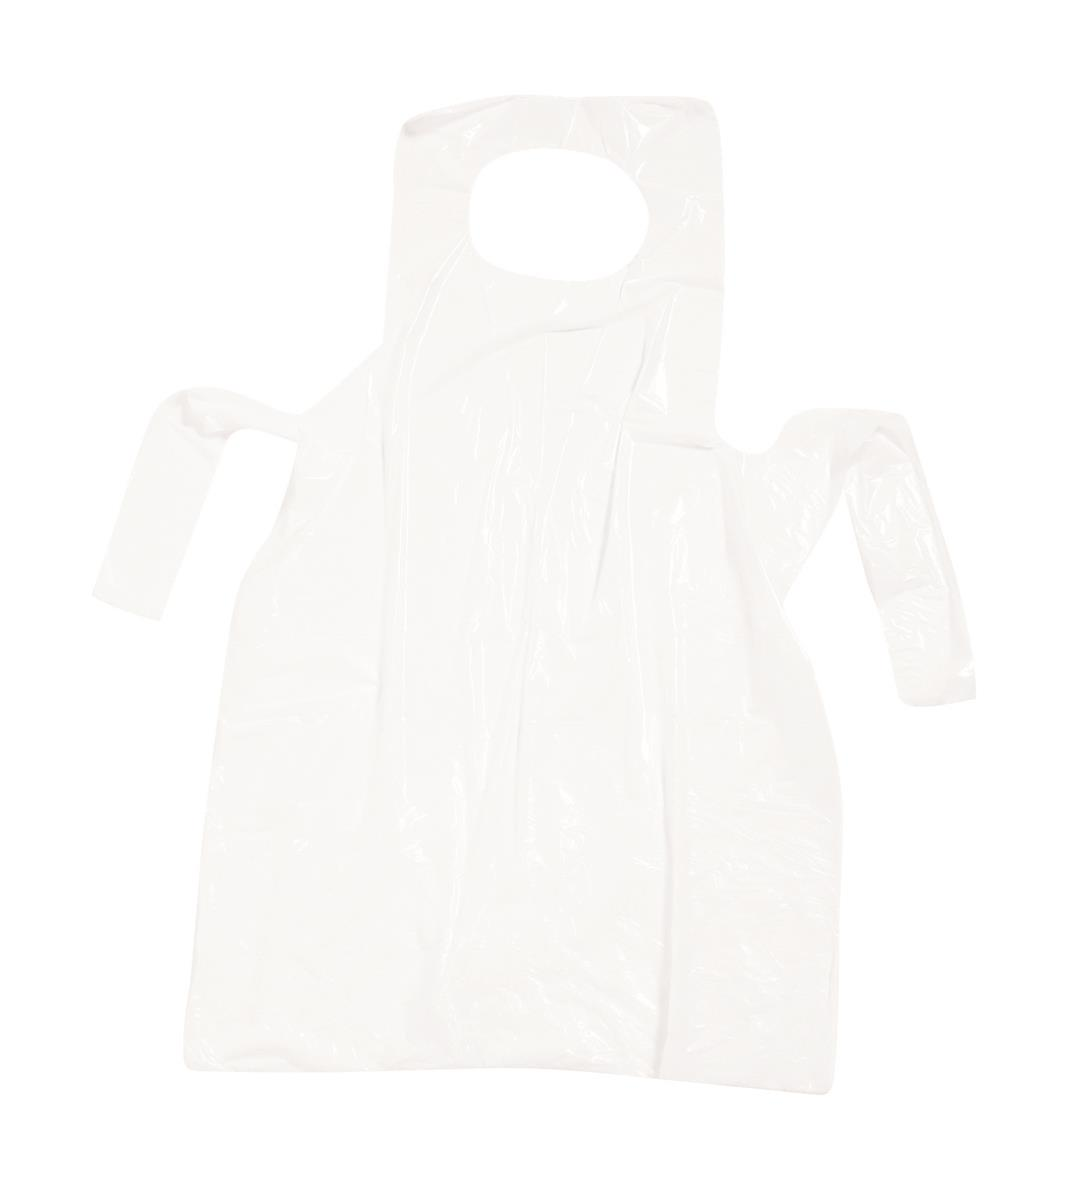 Aprons On Roll Polythene 17 Micron 27x46in Clear [Roll of 200]